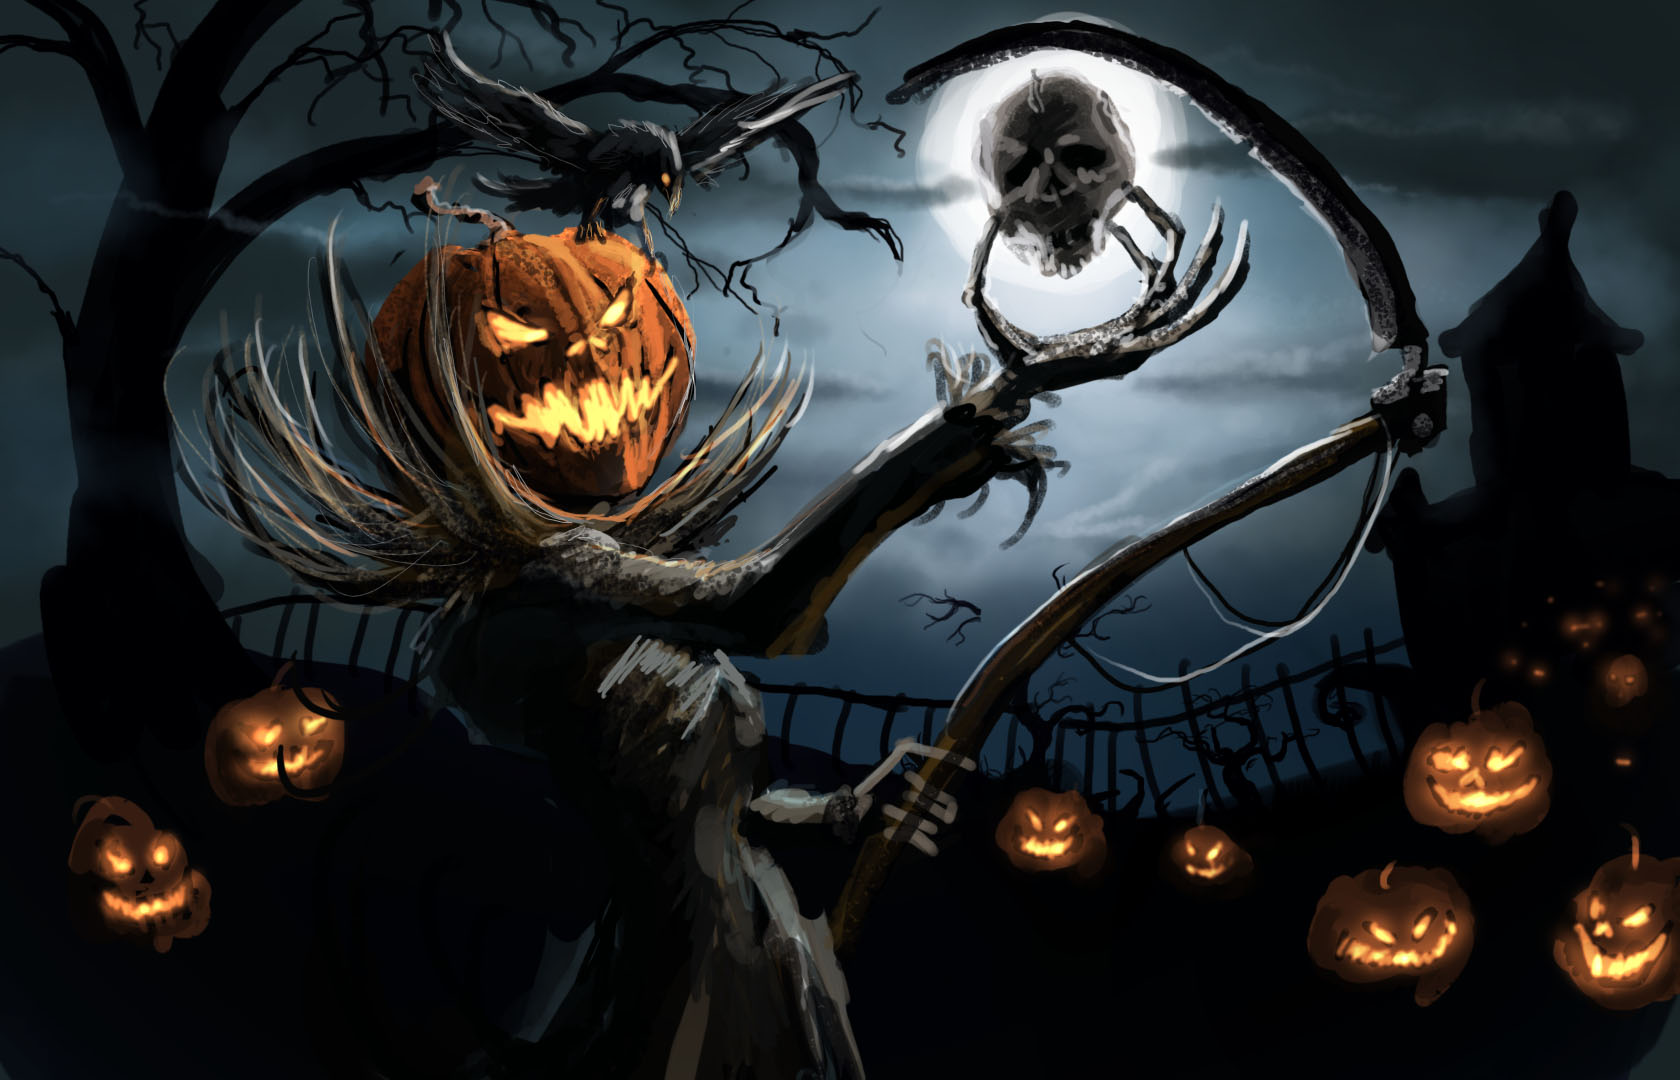 Halloween Spooky Pictures.41 Spooky Facts About Halloween Page 1